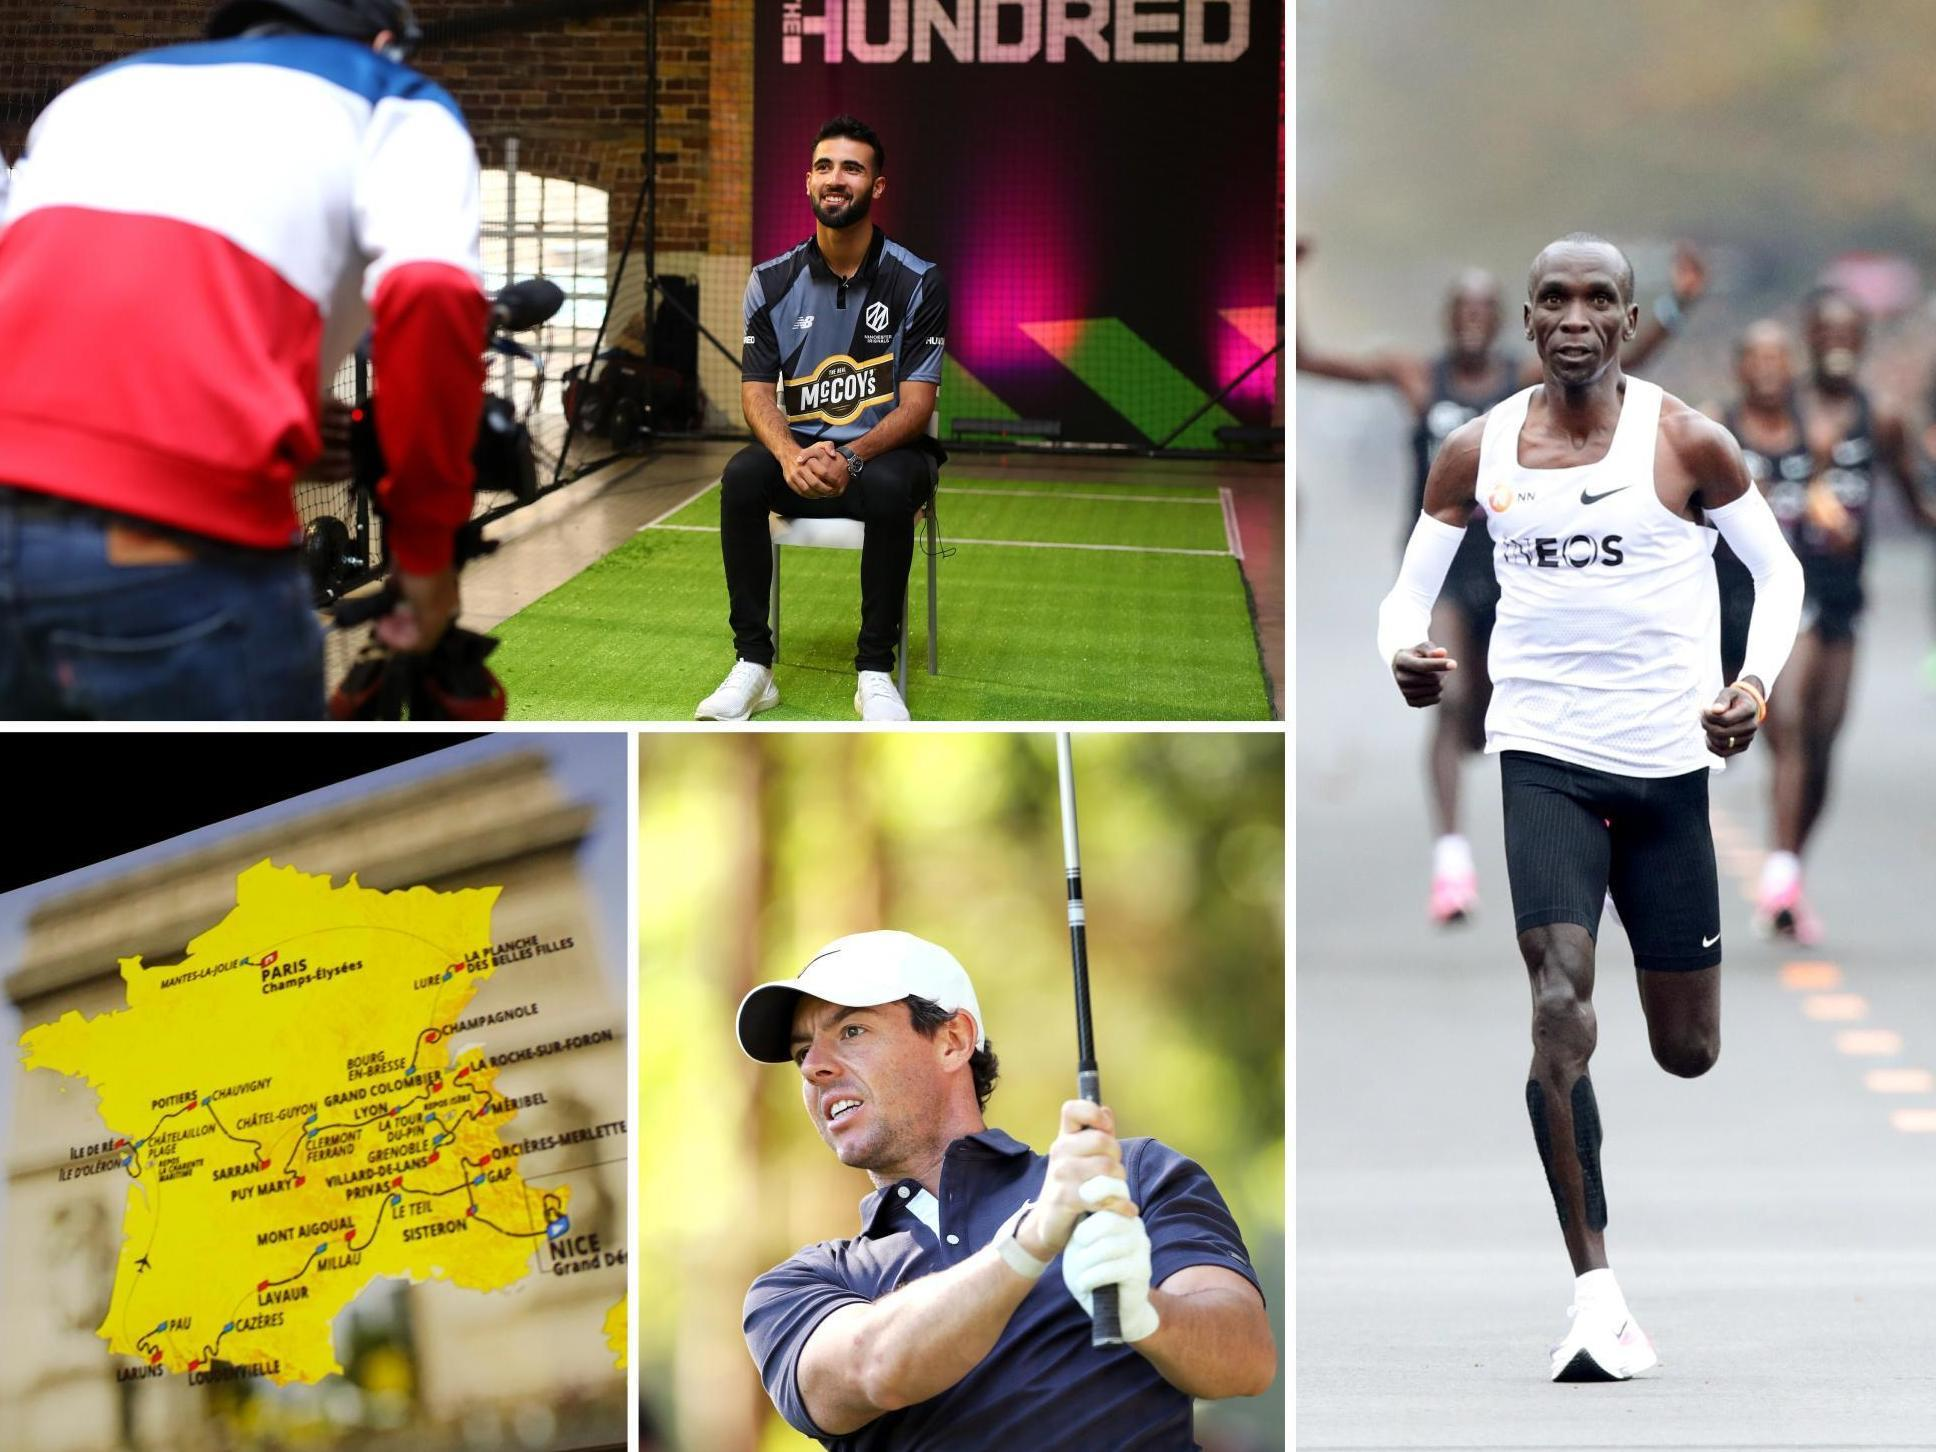 From the Tour de France to The Hundred, the rise of manufactured sport is altering its very fundamentals